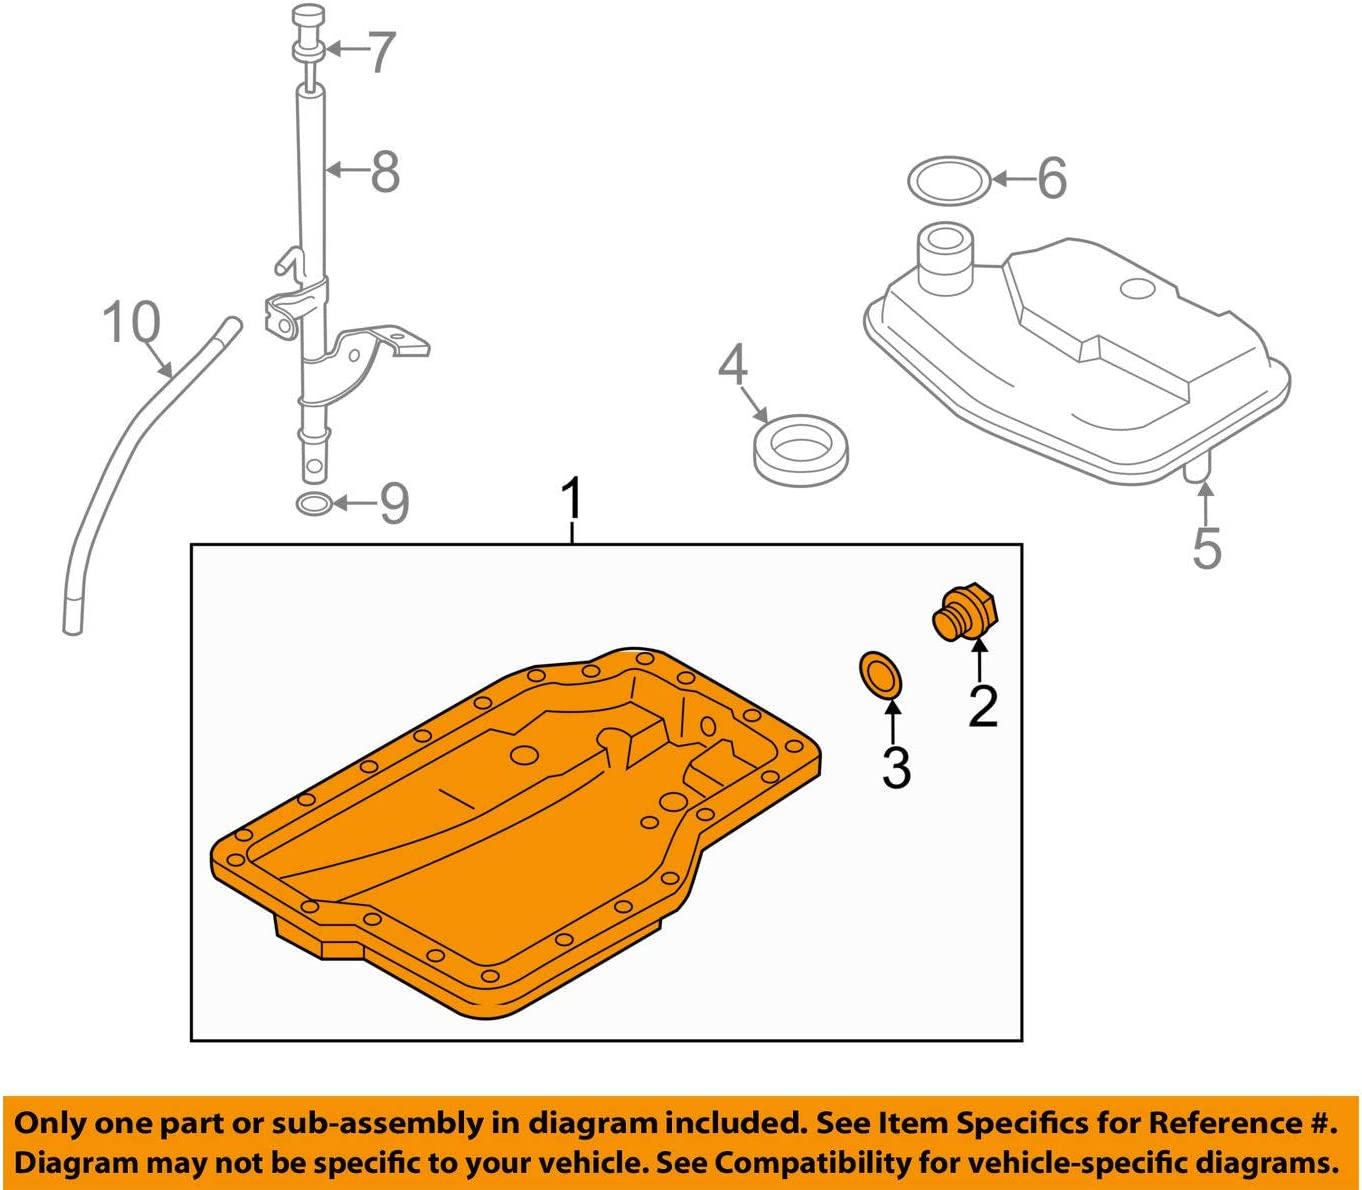 2006-2013 Mazda3 5 6 CX-7 High quality new Replace Transmission Pan AUTOMATIC 2021 model Oil